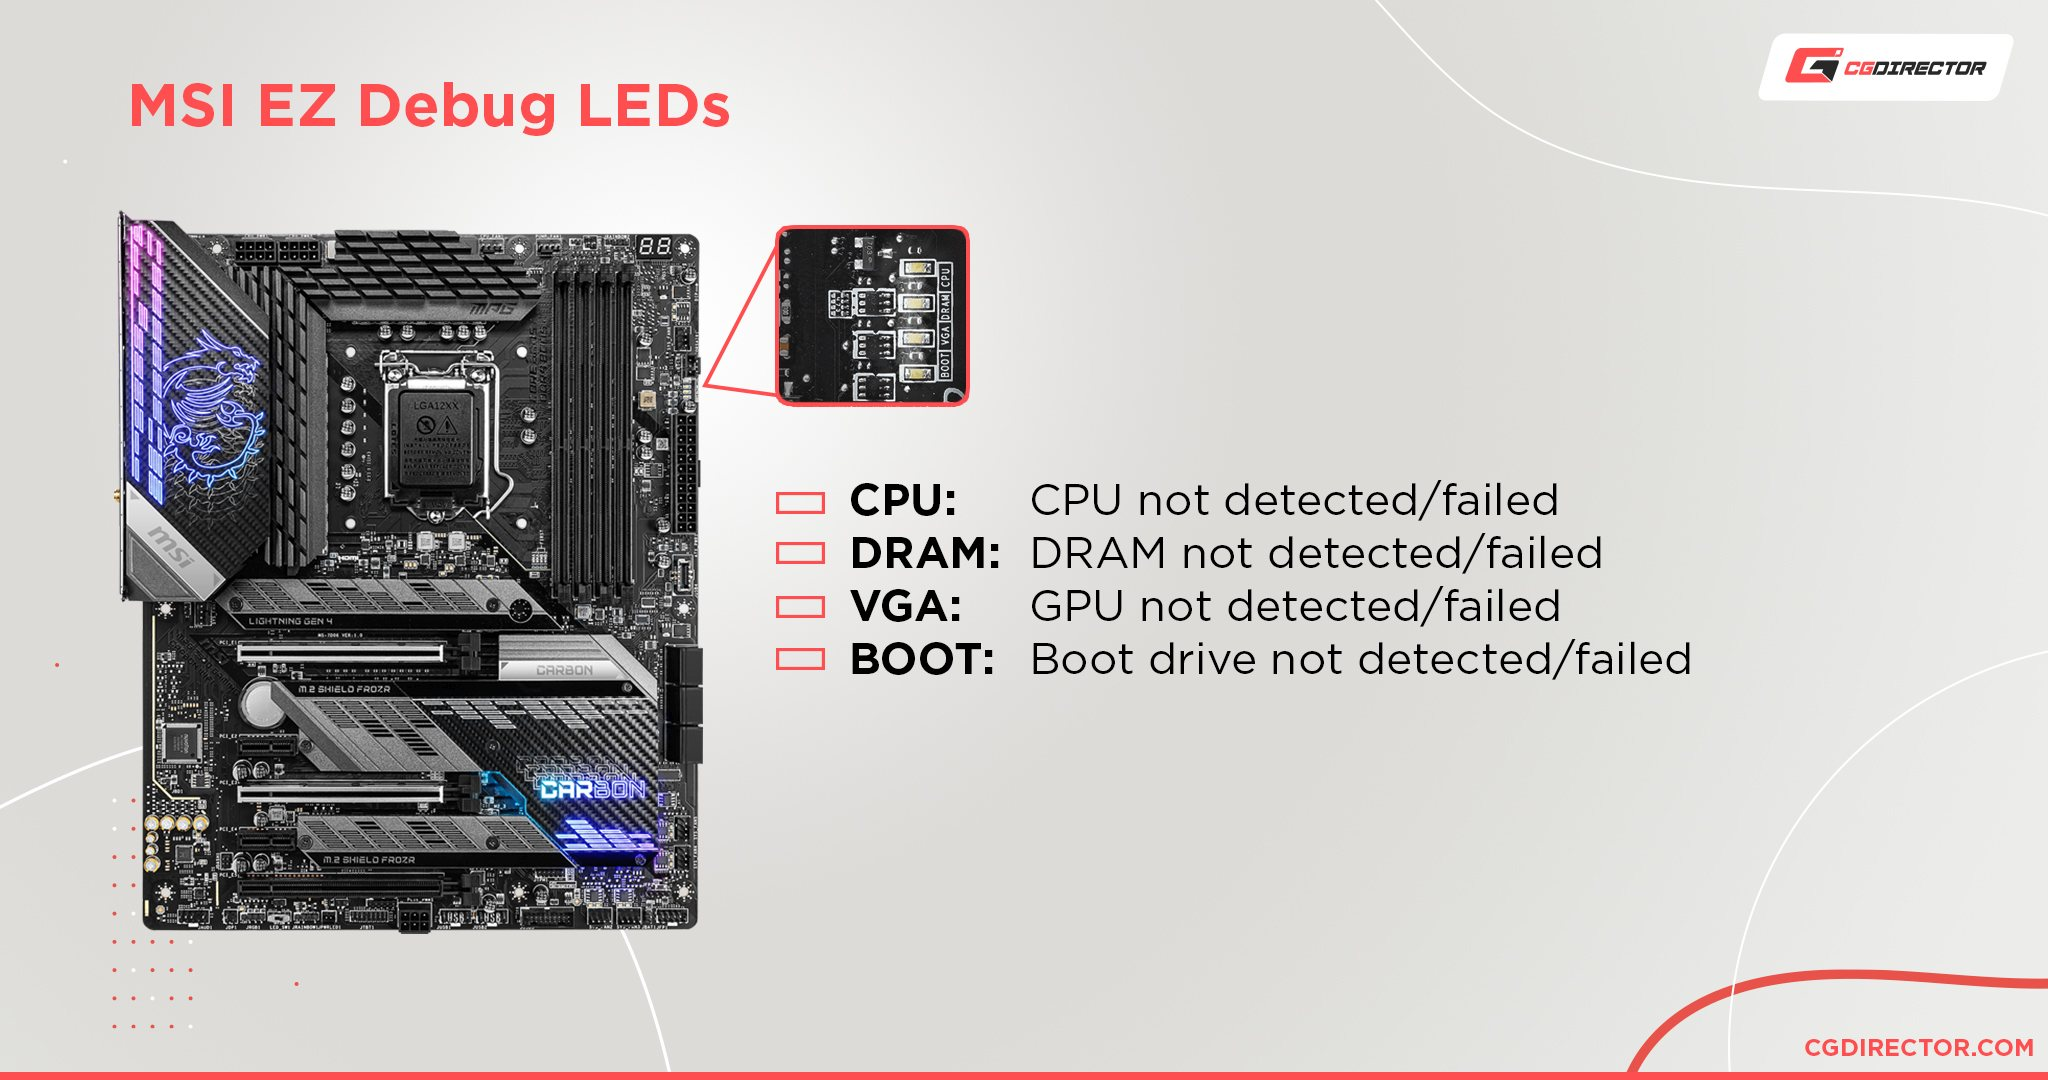 Where is the EZ Debug LED located